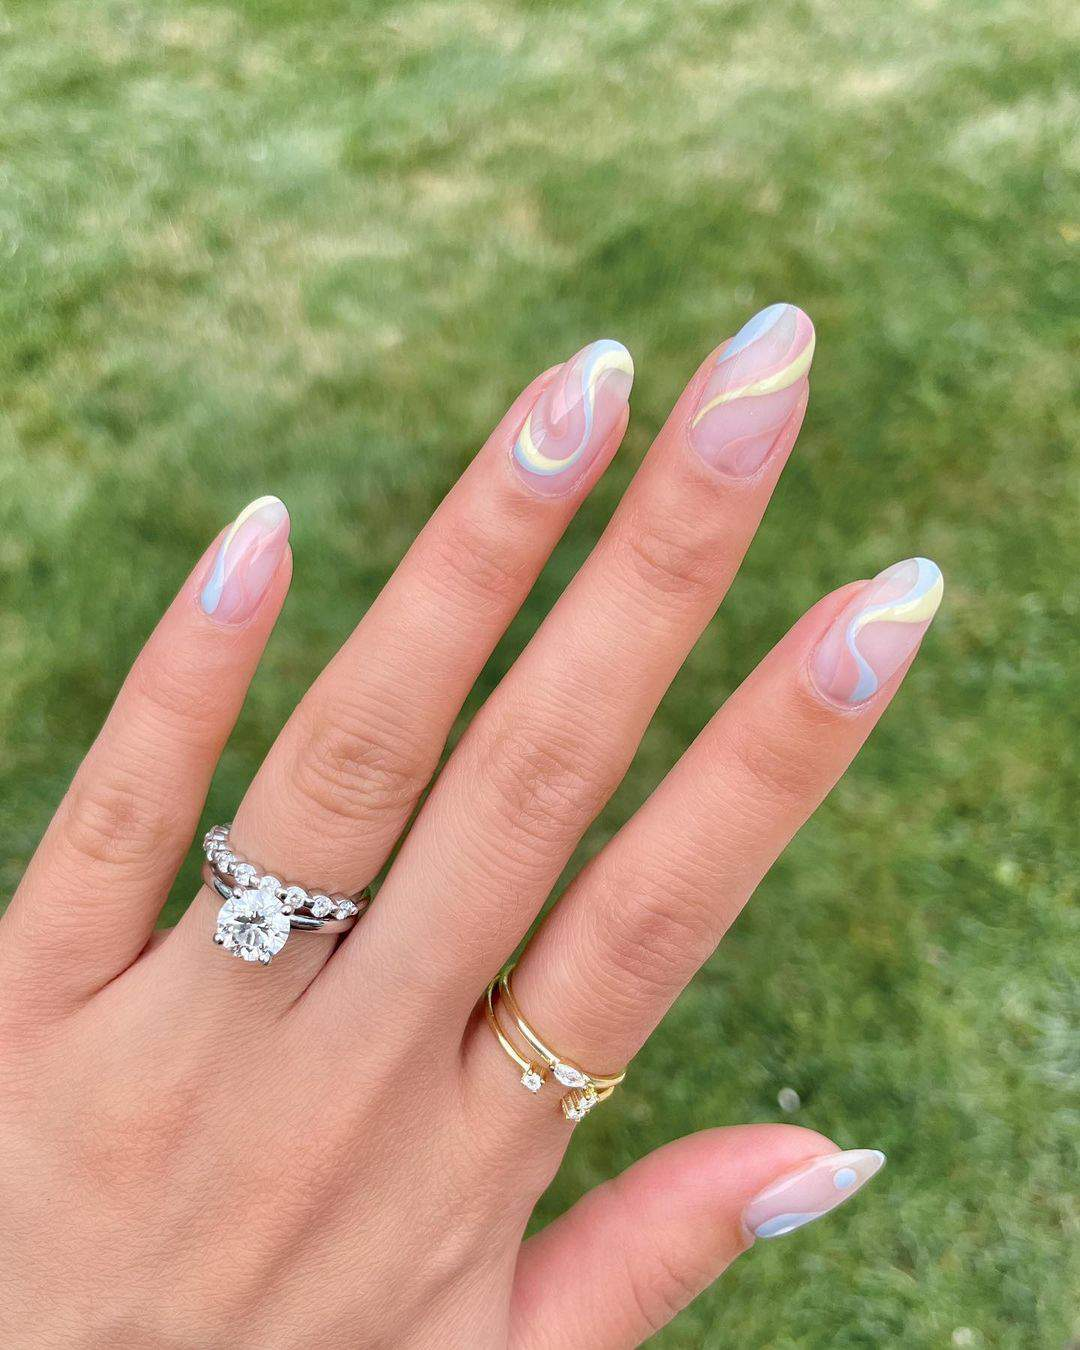 The 100+ Best Nail Designs Trends And Ideas In 2021 images 2